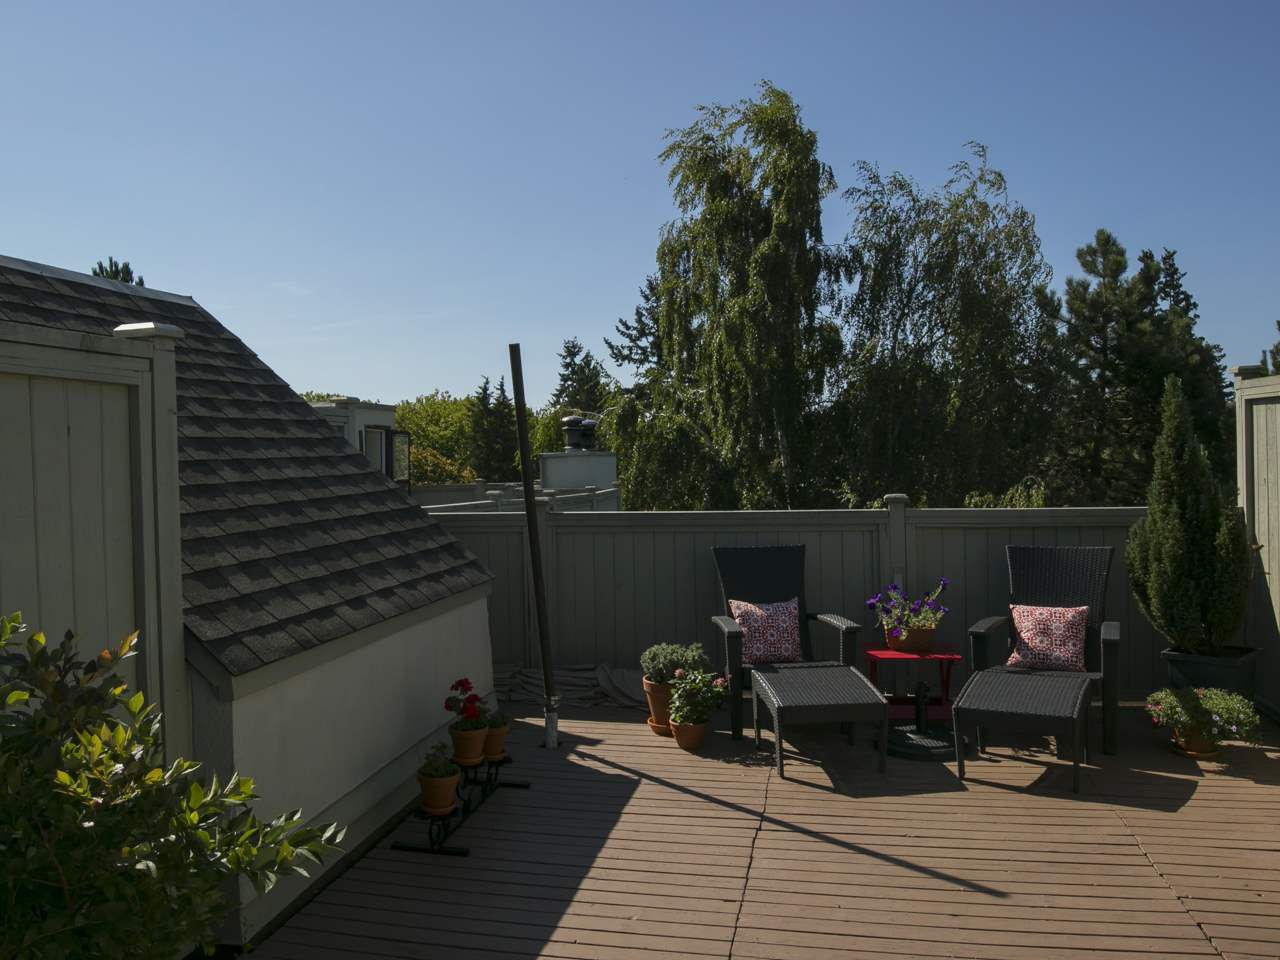 """Main Photo: 17 3437 W 4TH Avenue in Vancouver: Kitsilano Townhouse for sale in """"Waterwood Court"""" (Vancouver West)  : MLS®# R2055297"""